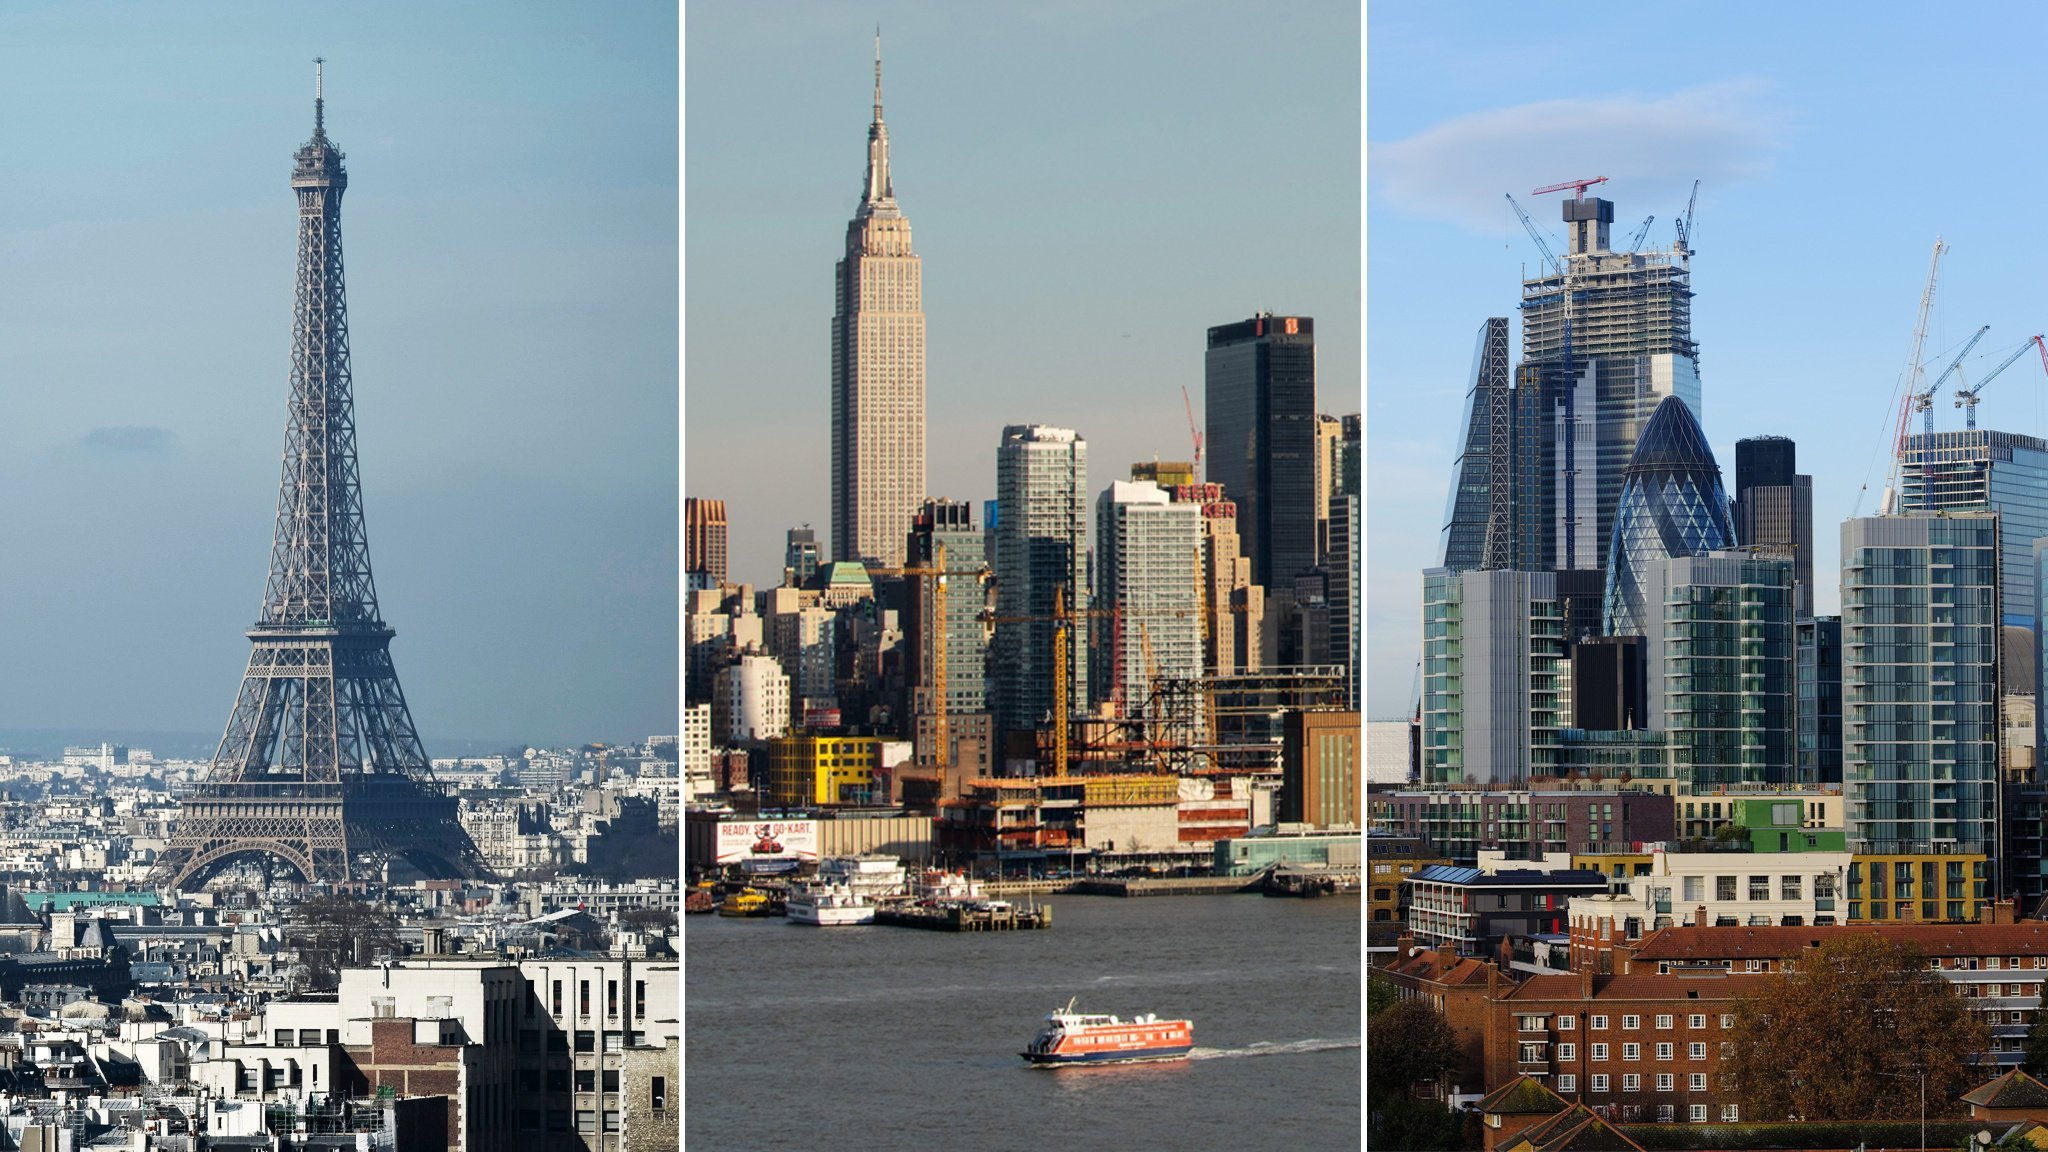 Global cities begin to shrink as inner areas empty out